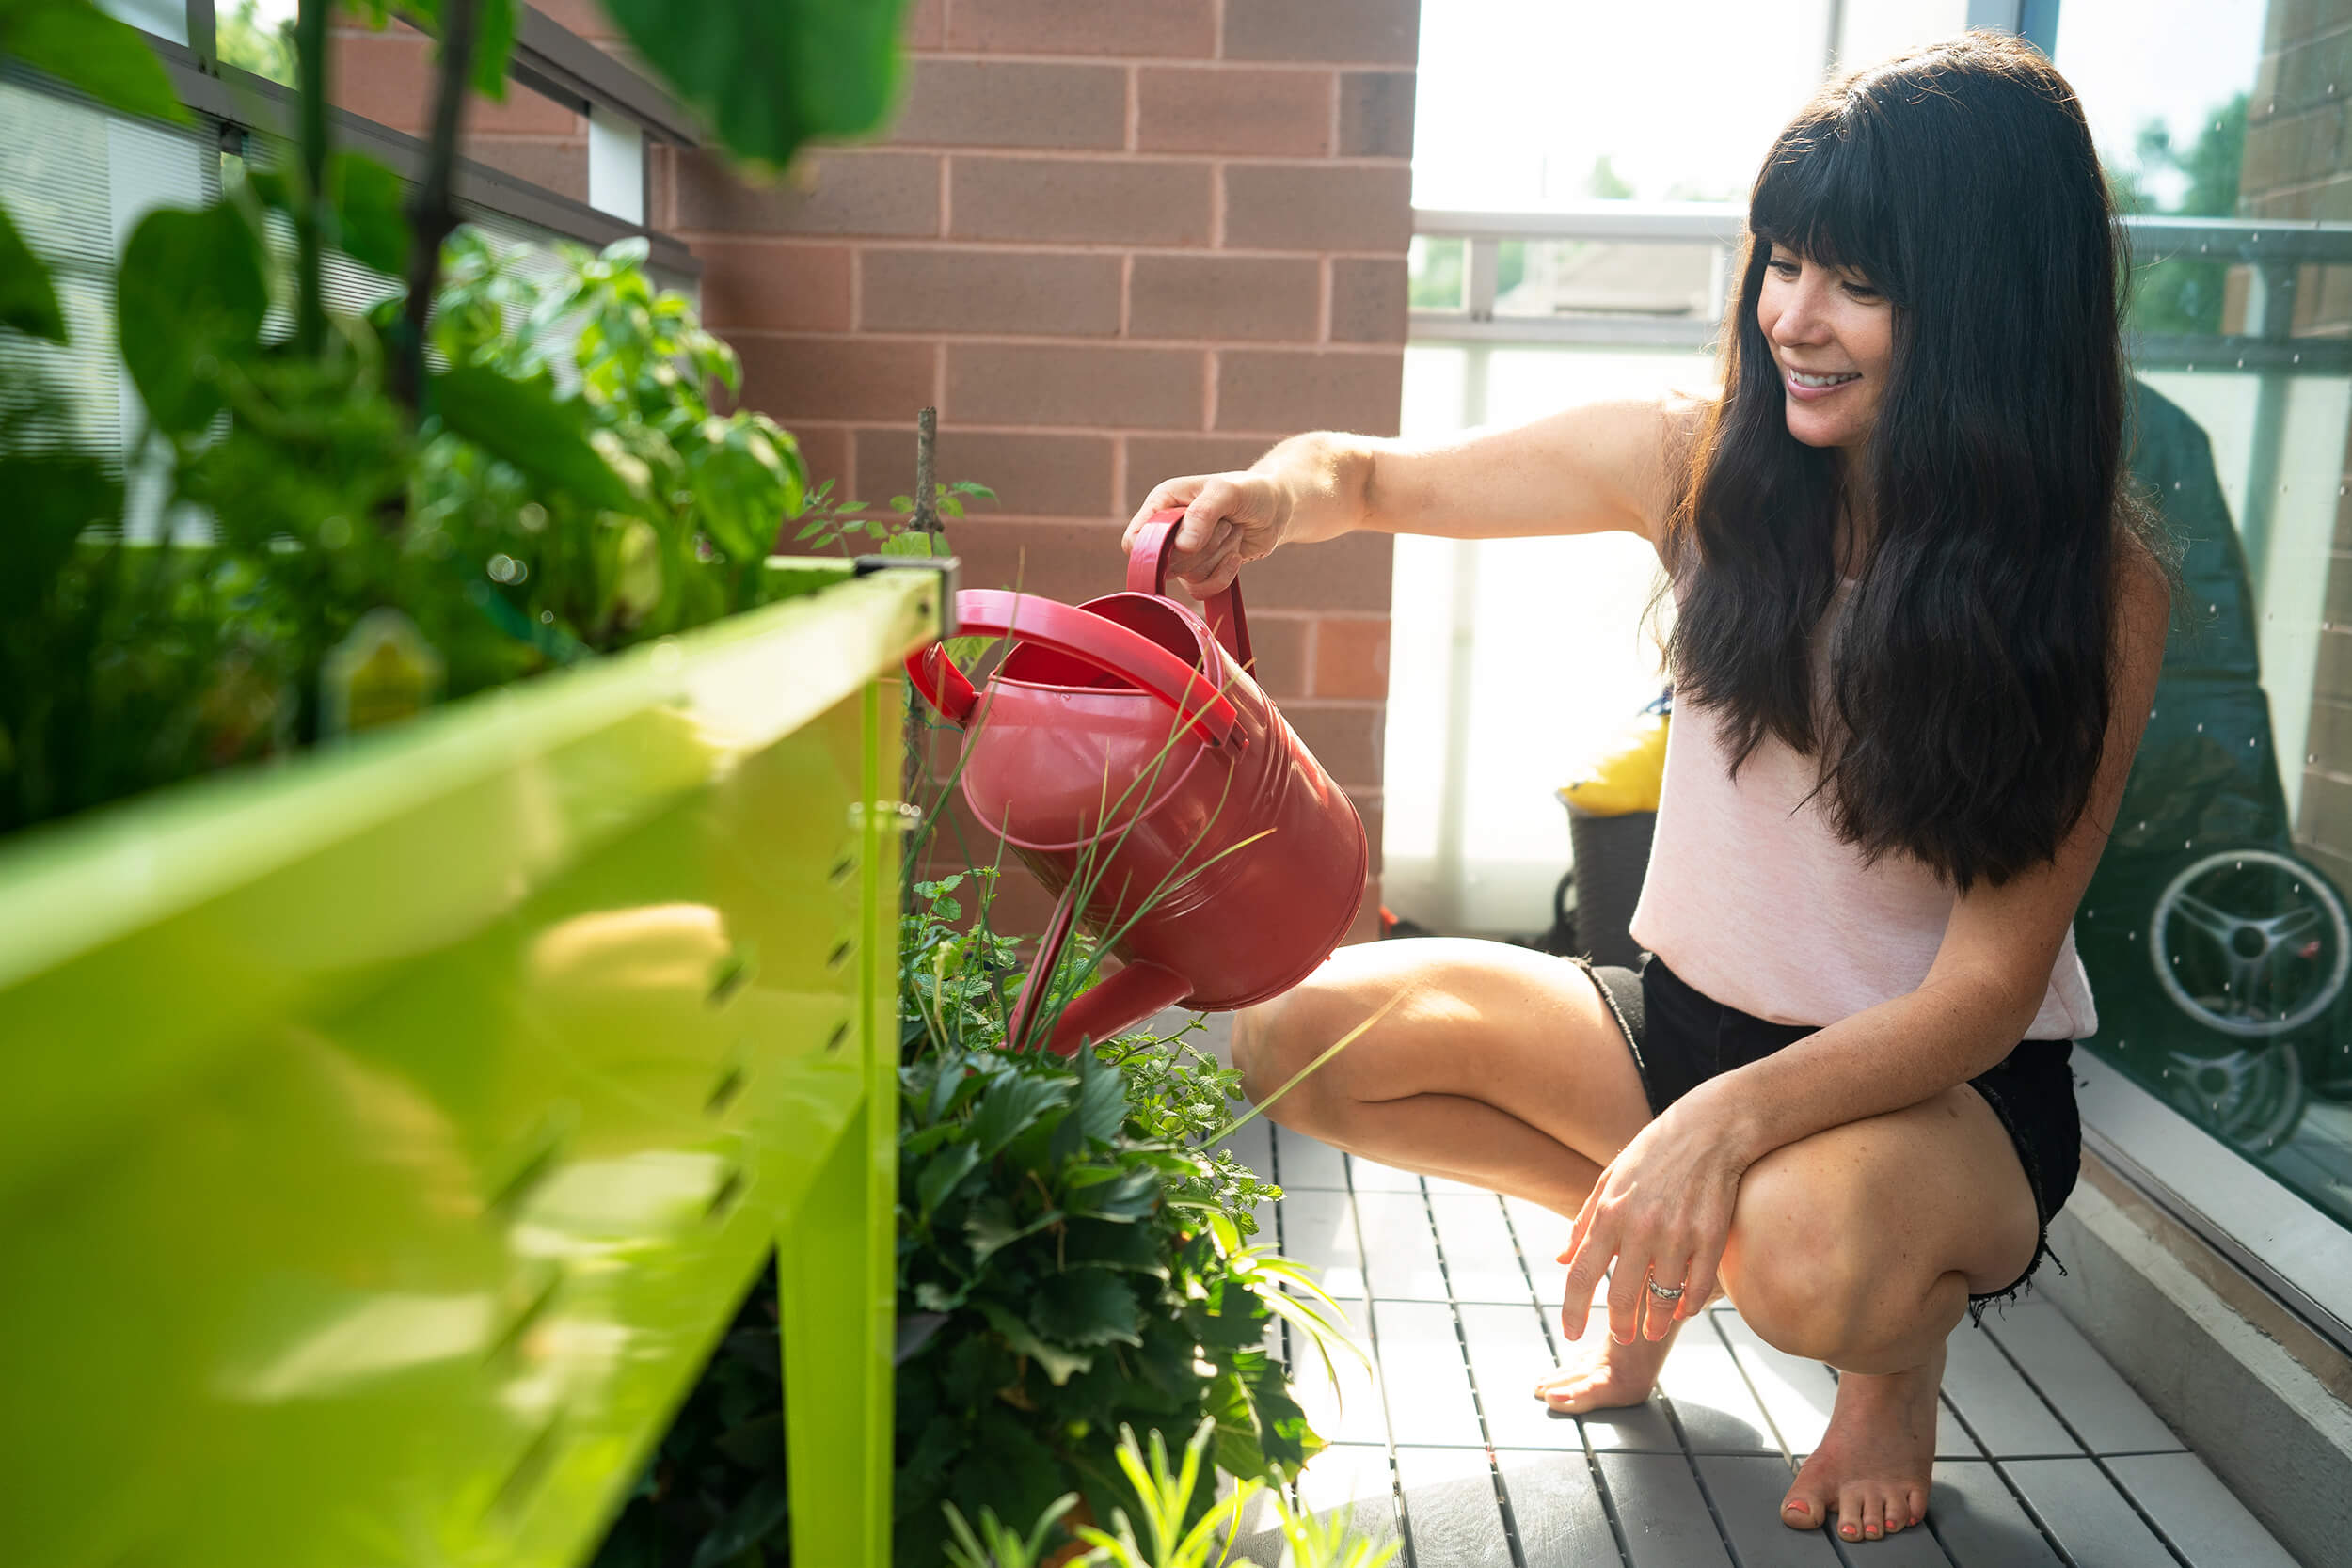 Joy Watering Plants